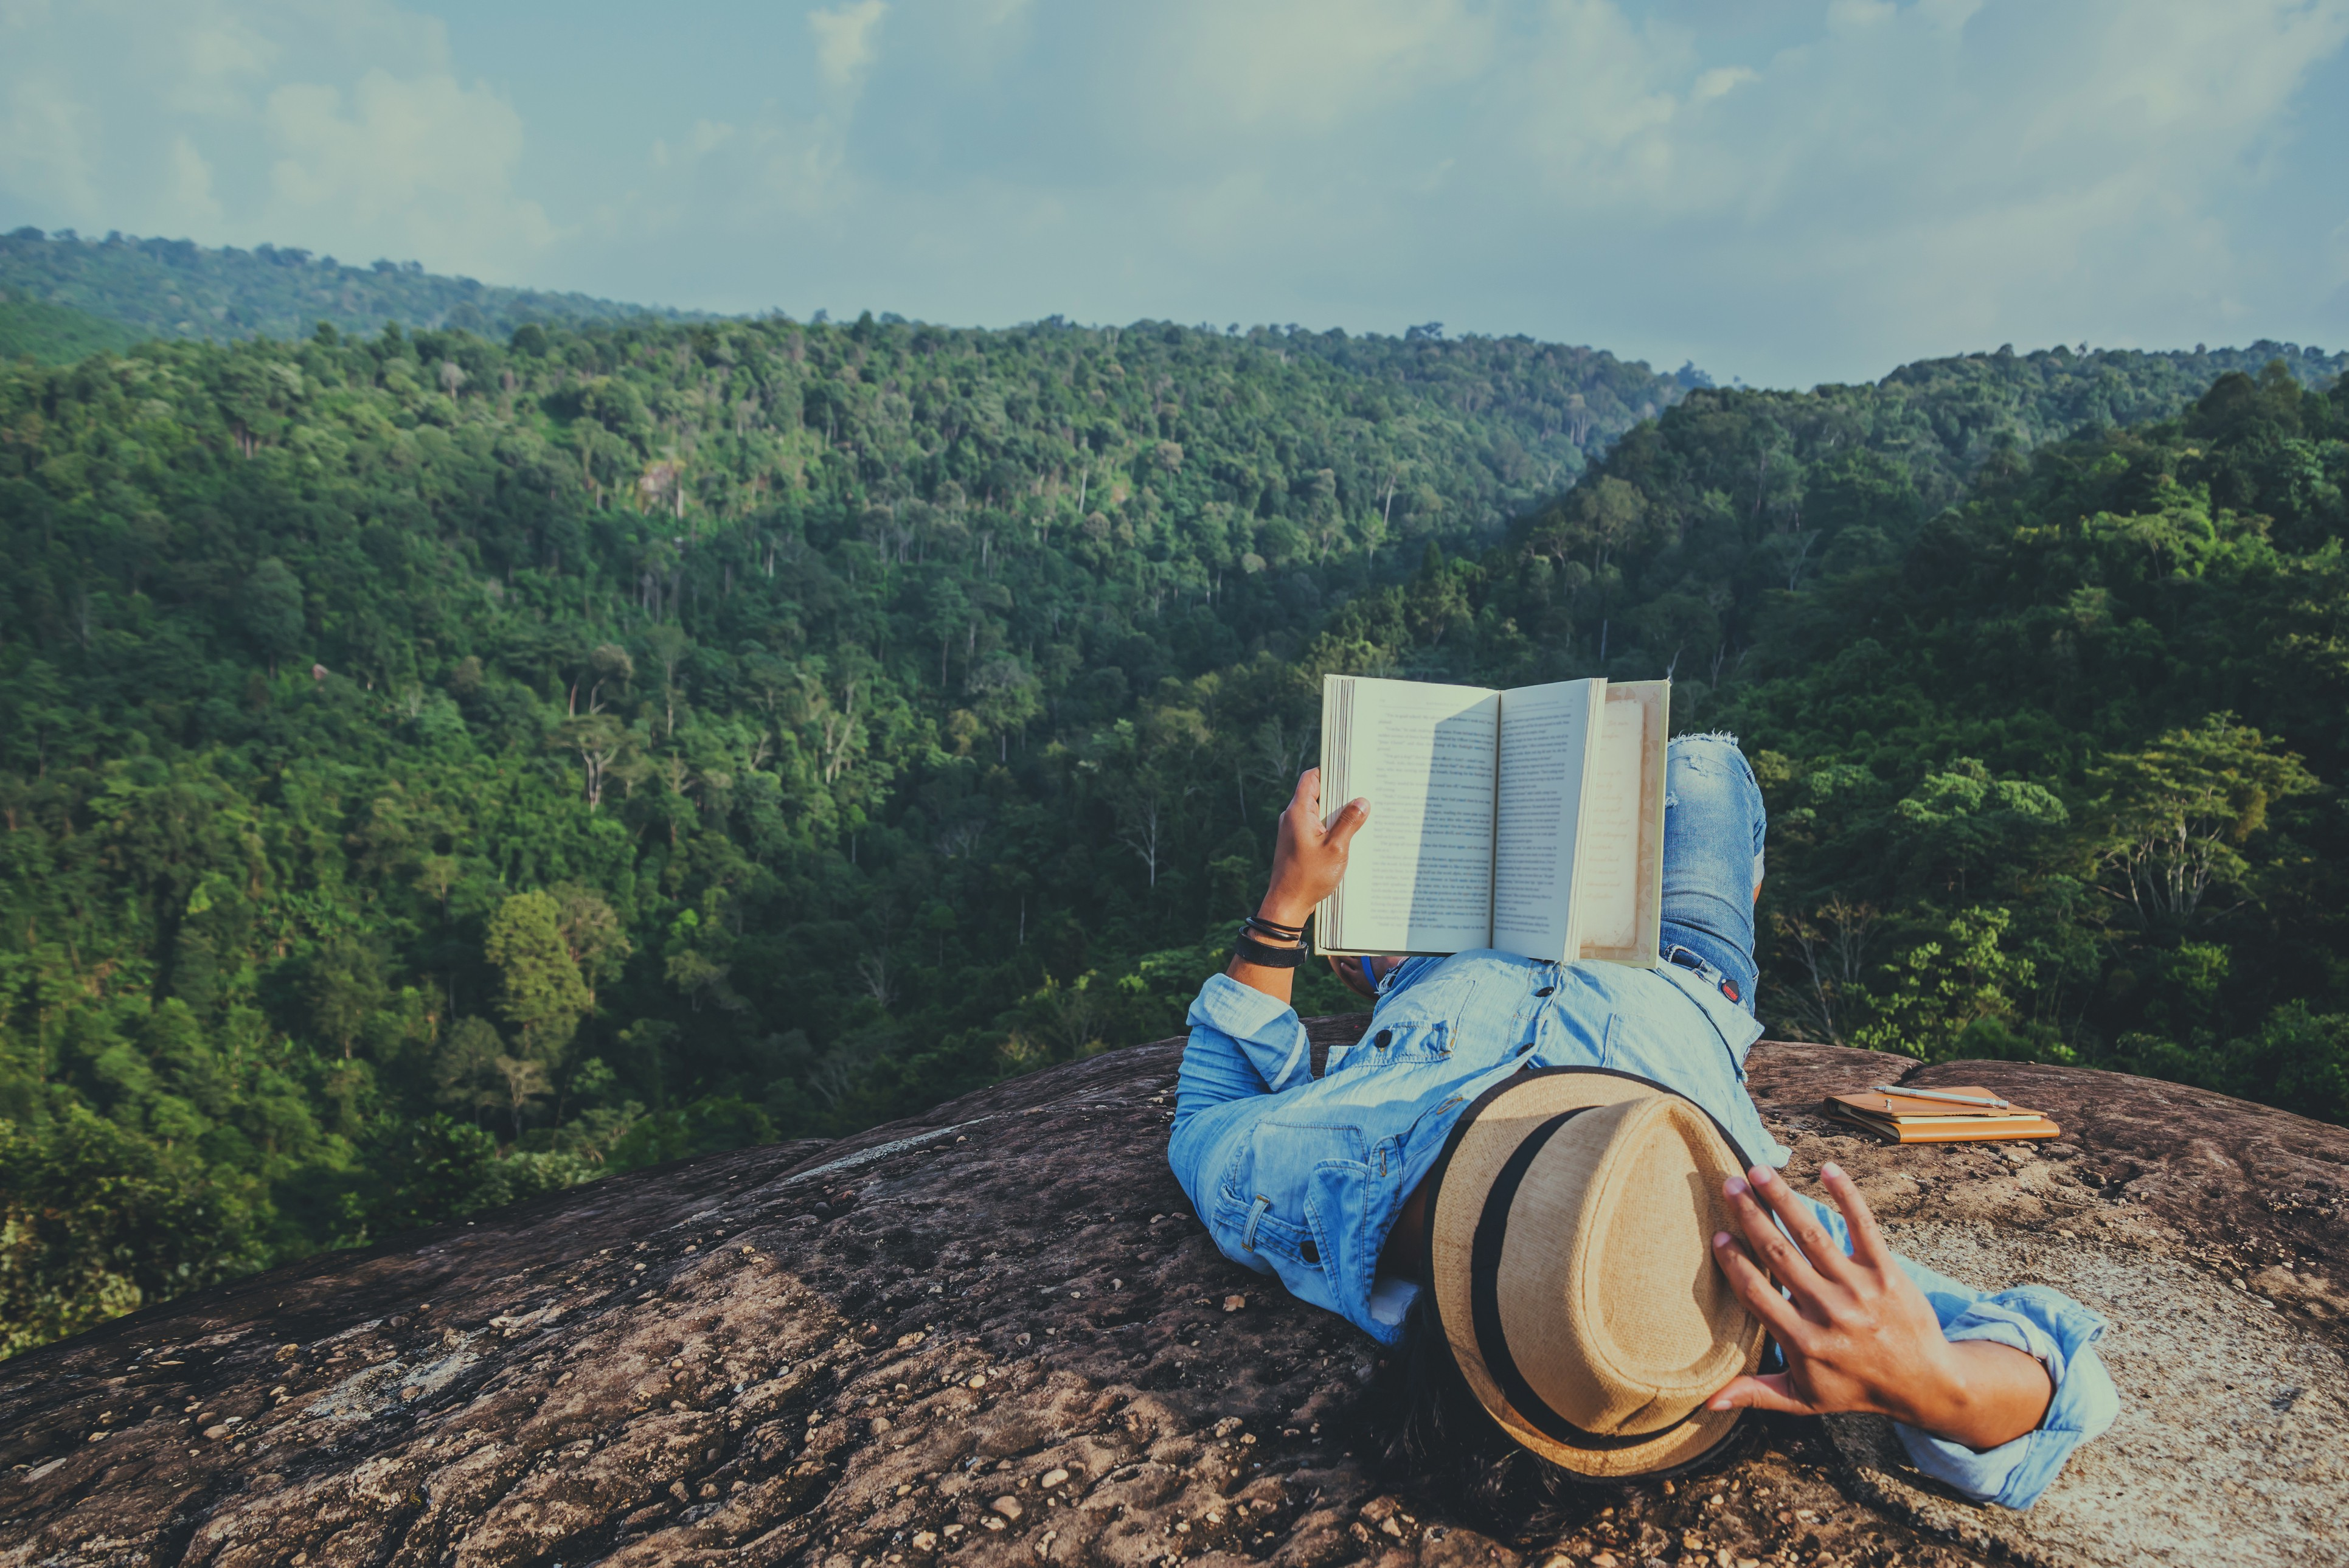 Woman reading a book in front of a scenic mountainous area